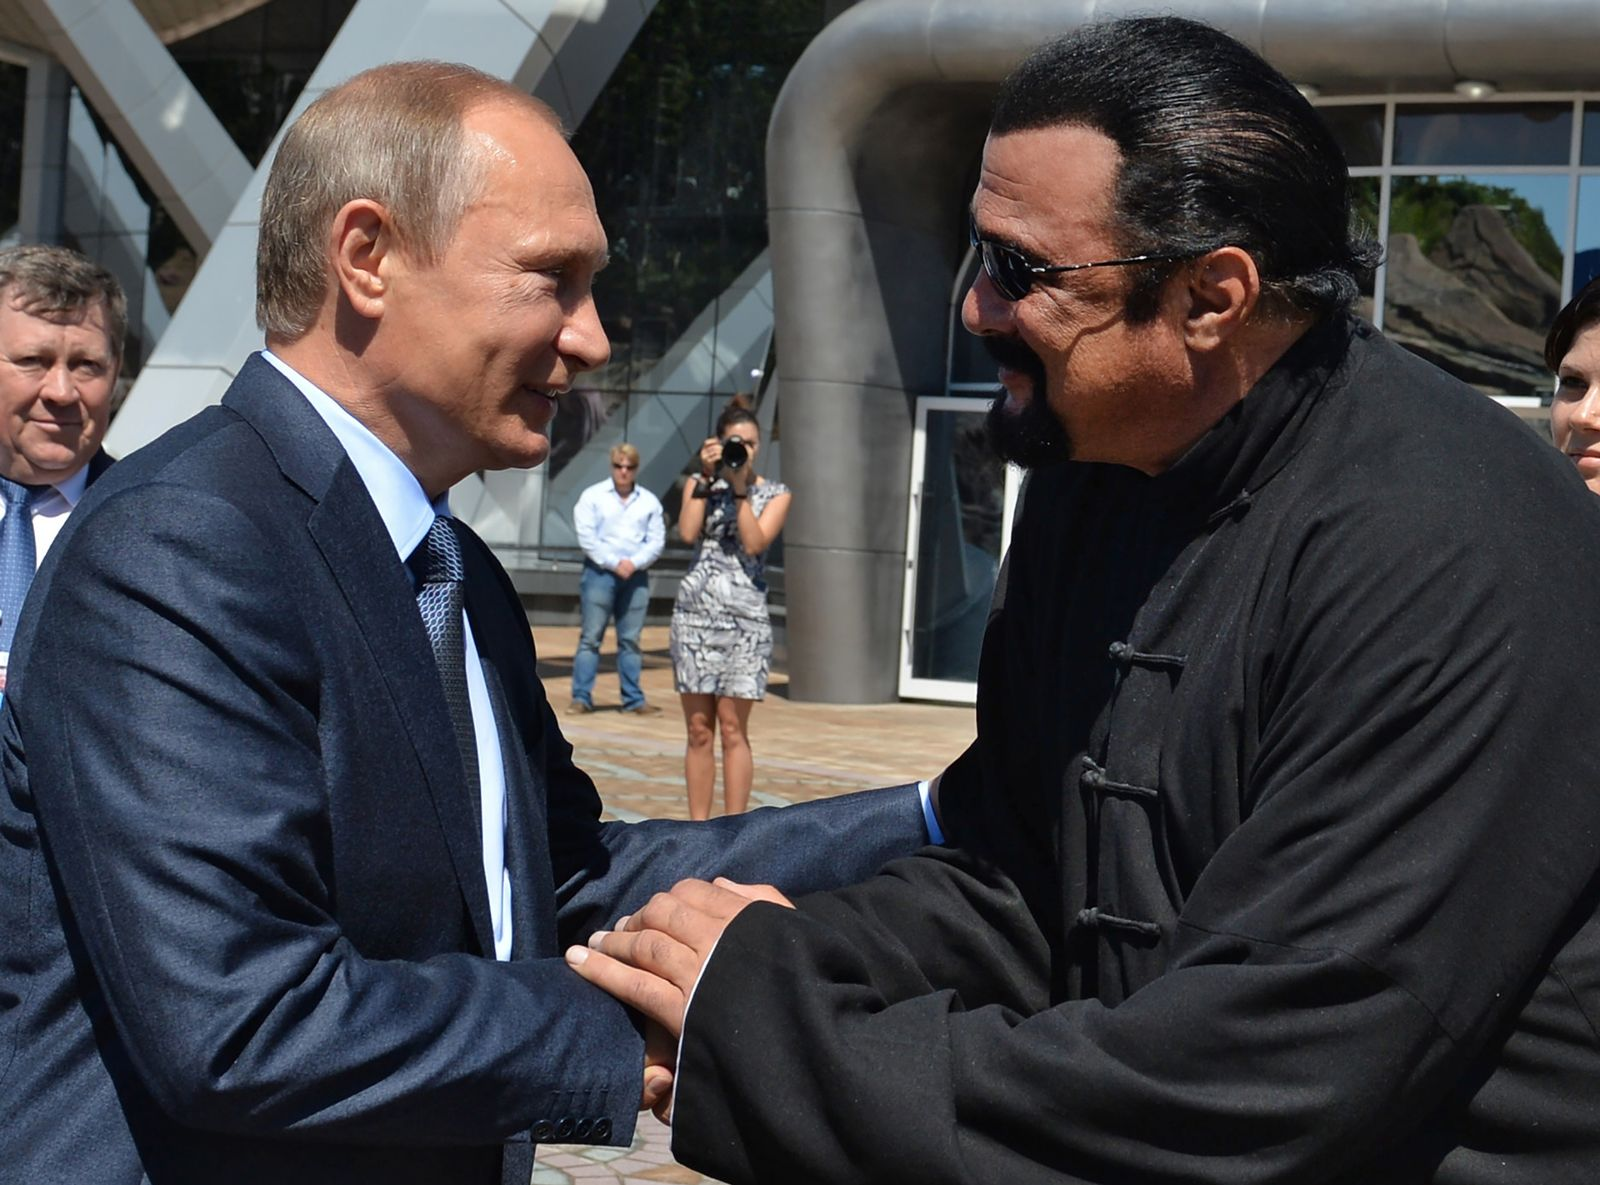 FILES-RUSSIA-US-PUTIN-SEAGAL-CITIZENSHIP